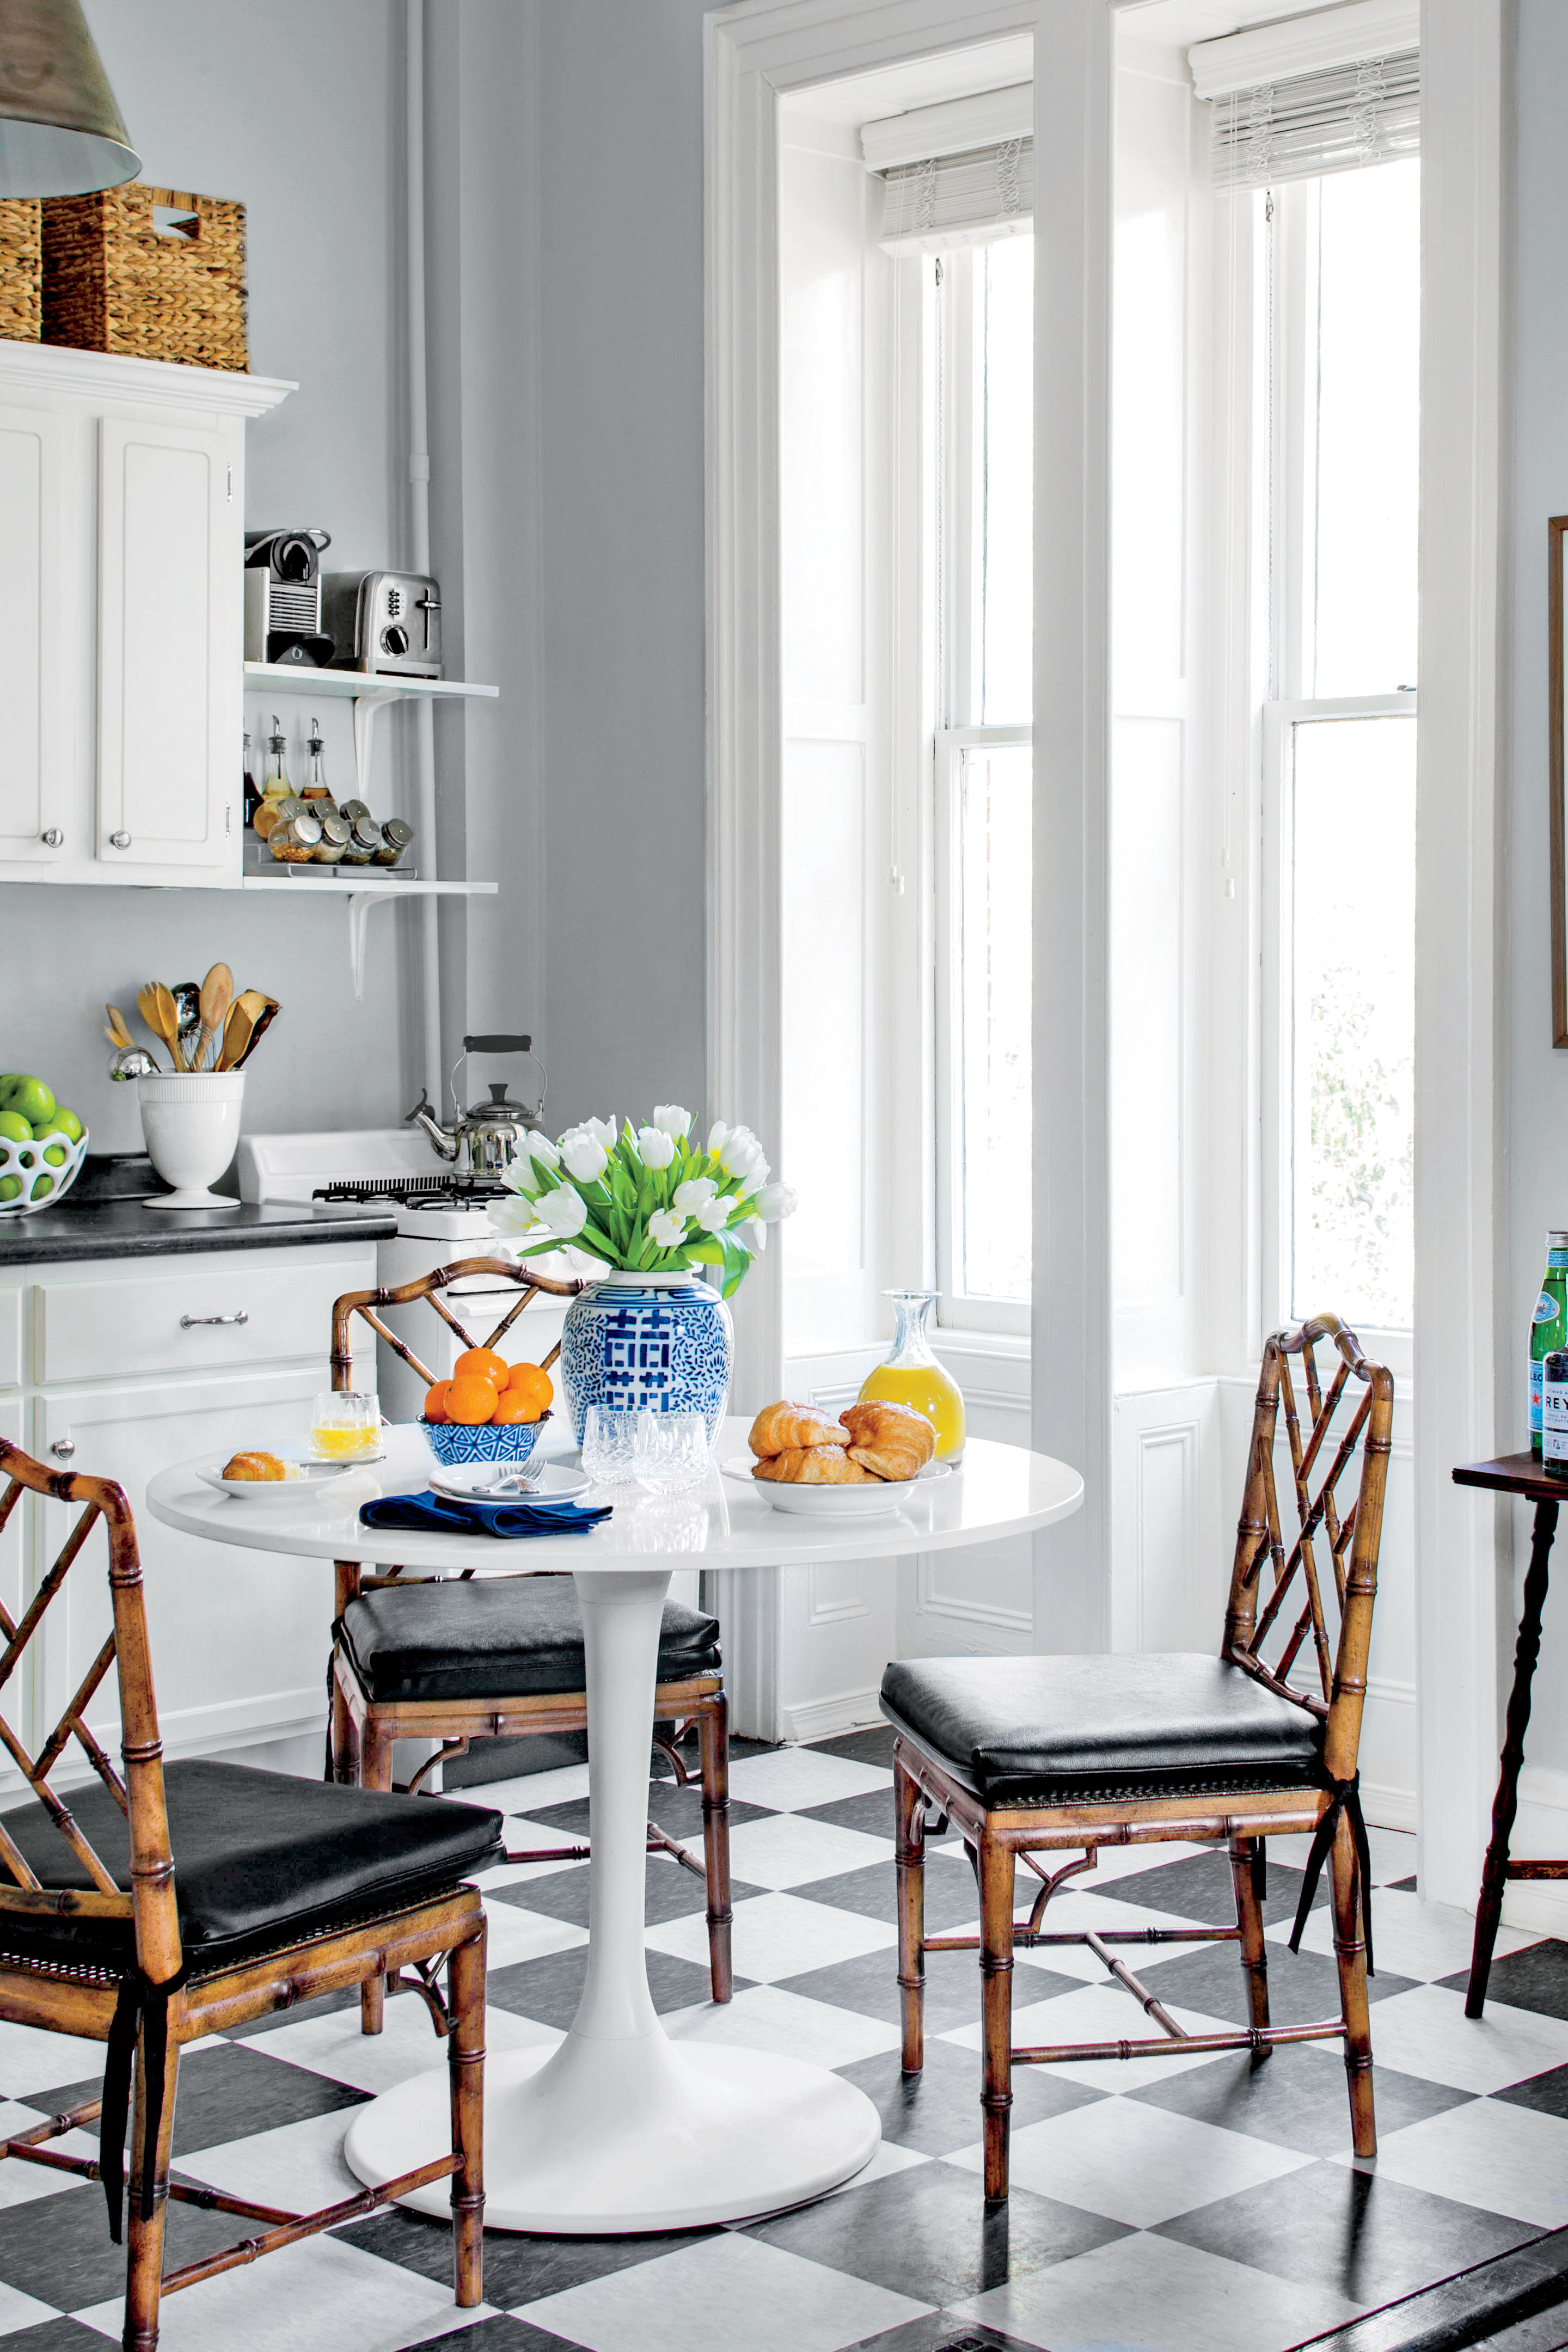 7 Decorating Tips That Will Make a New Place Feel Like Your Real Home